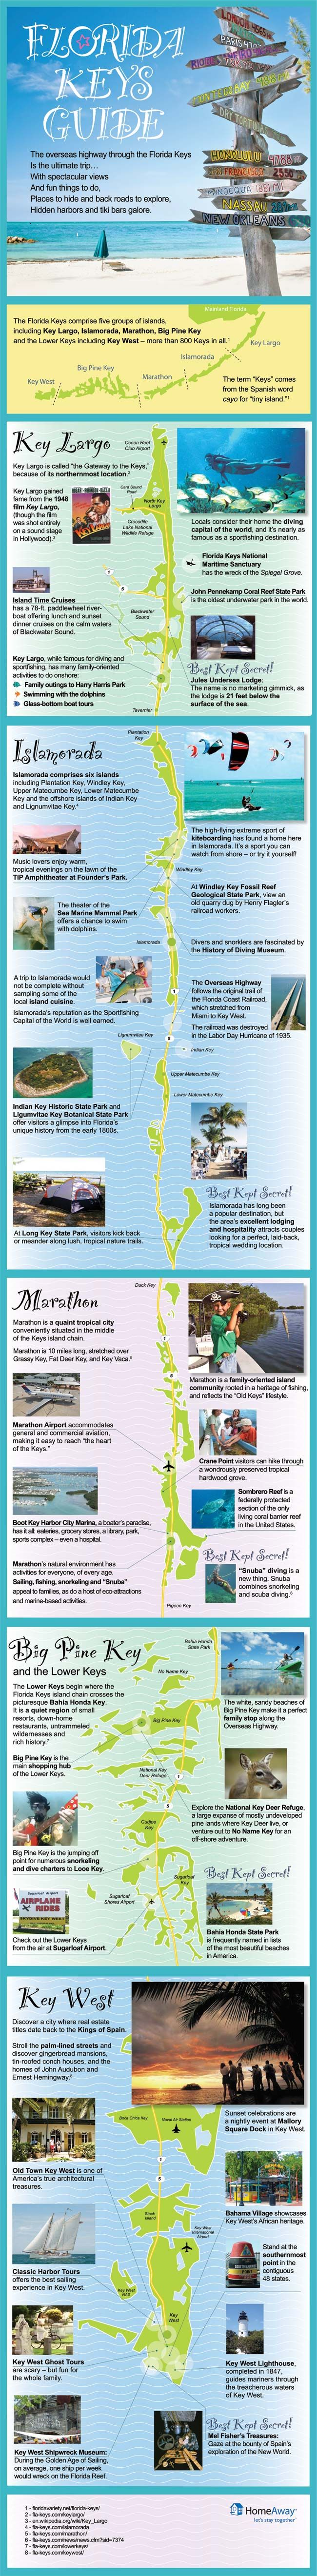 Where to Go in the Florida Keys Infographic - HomeAway Travel Ideas